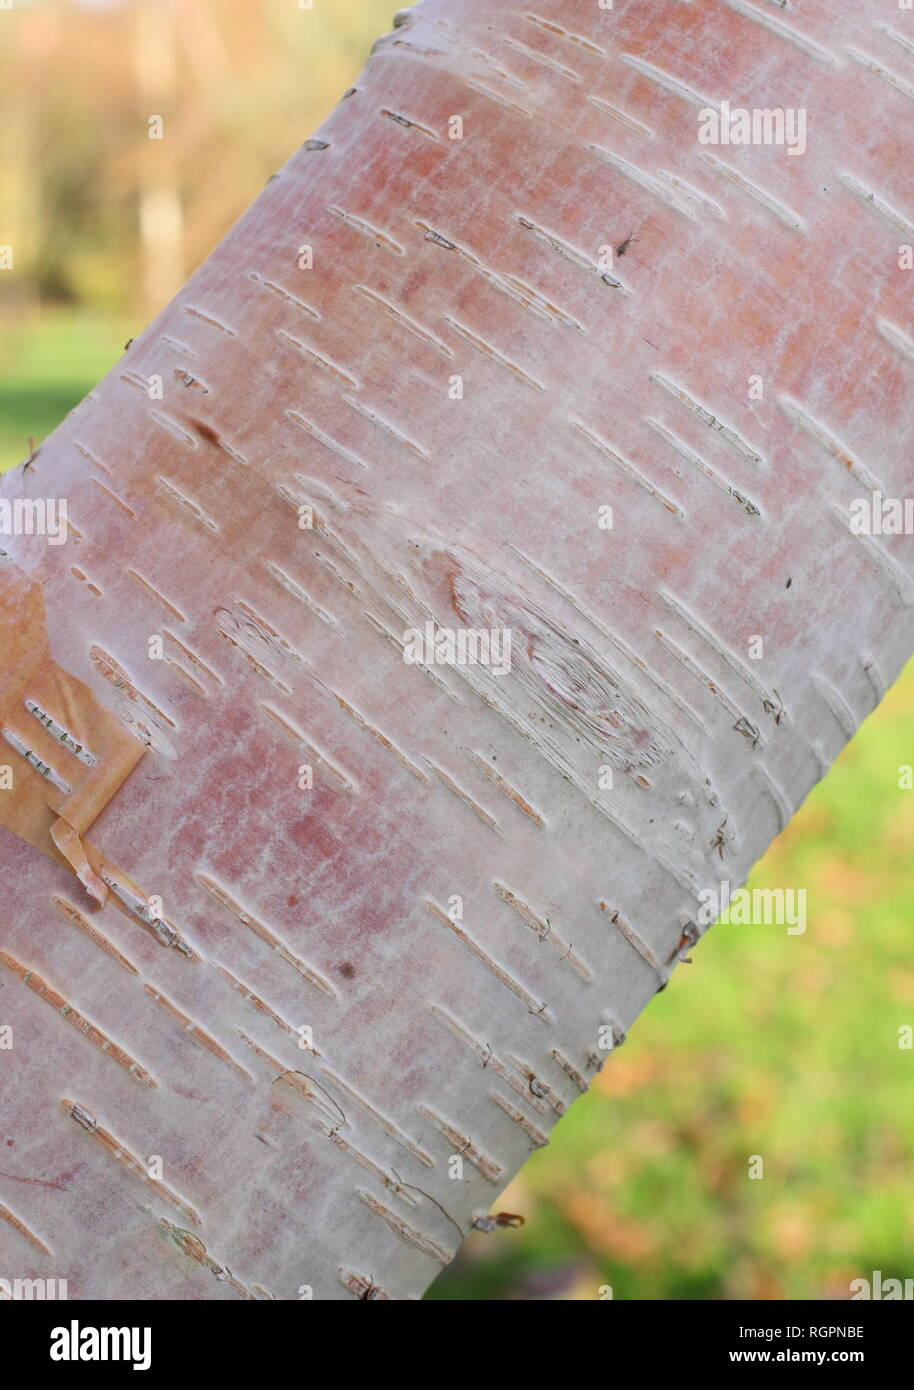 Betula utilis (subsp. albosinensis) 'Fascination' bark. Creamy pink tones of Birch tree 'Fascination' bark in winter, UK - Stock Image